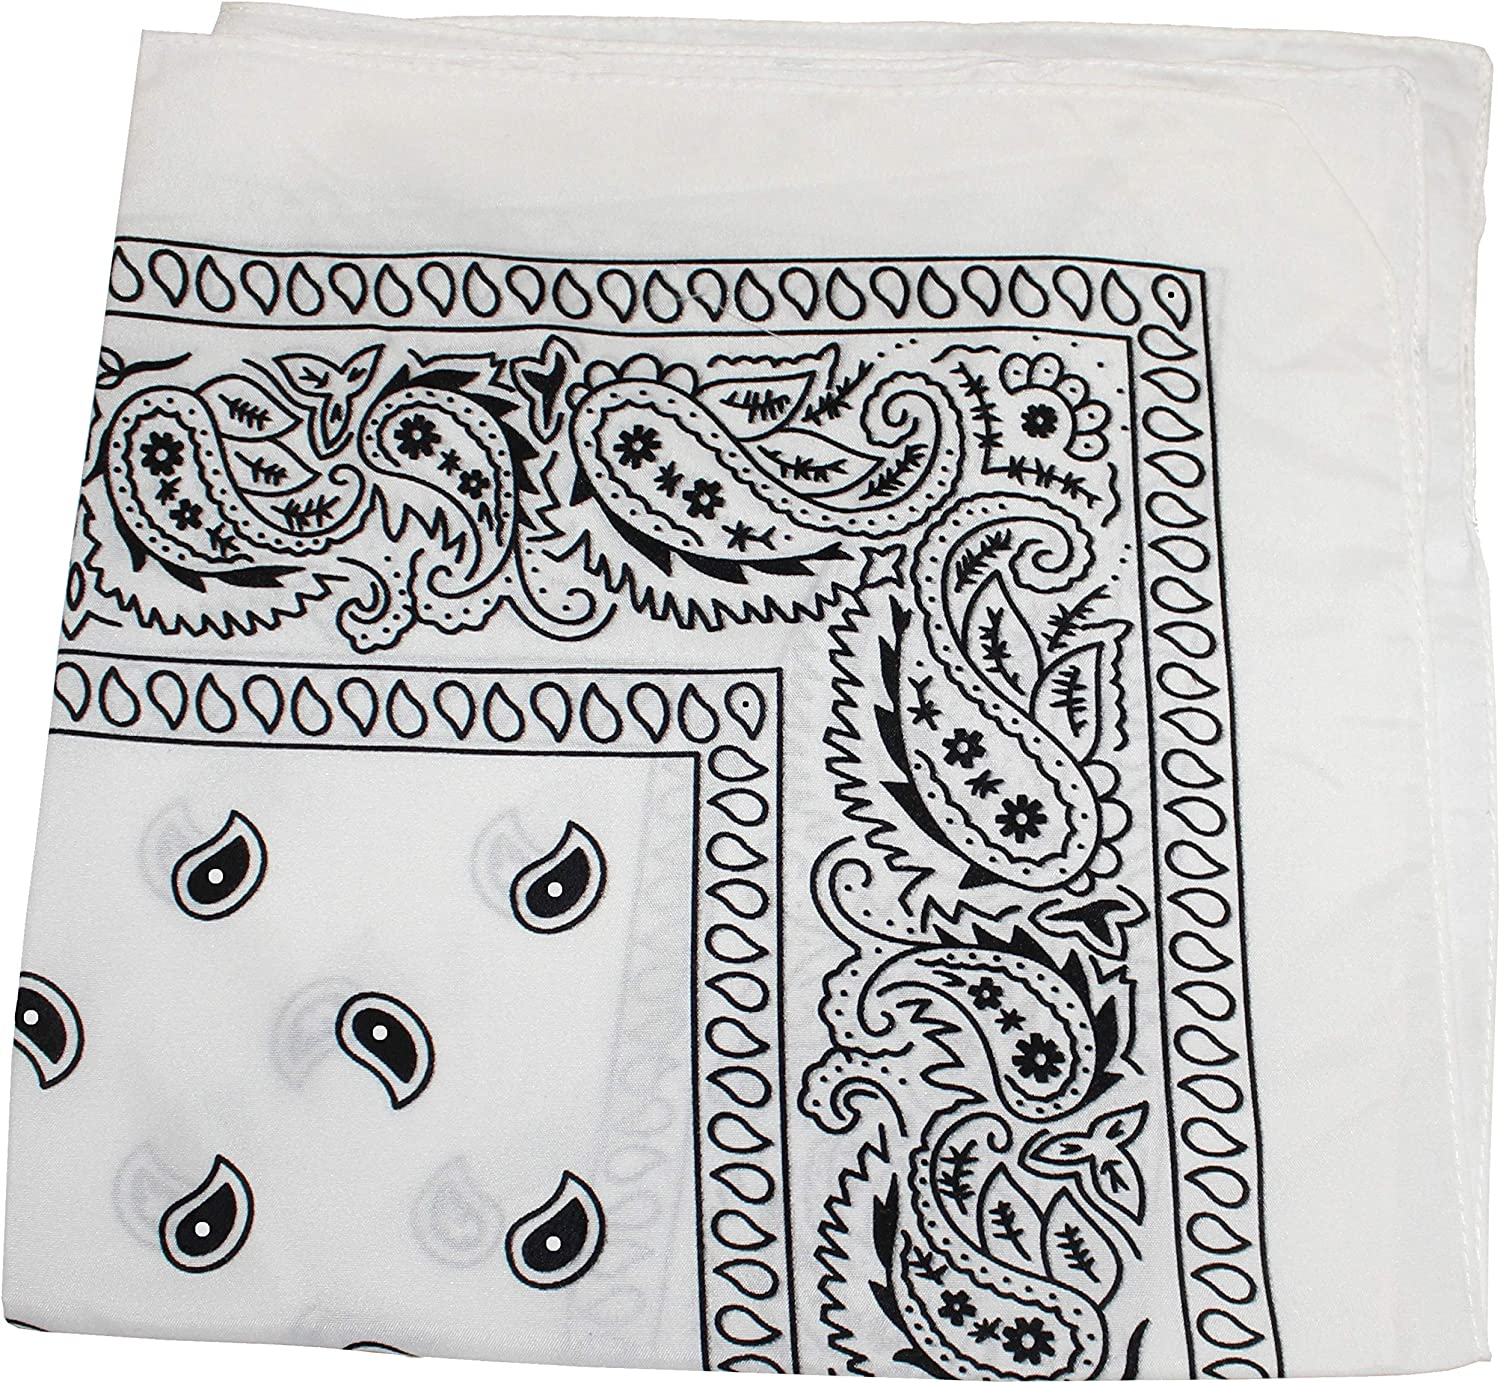 Pack of 48 Paisley Cotton Max 80% OFF Bandanas - Headwraps Bulk Whol Reservation Novelty